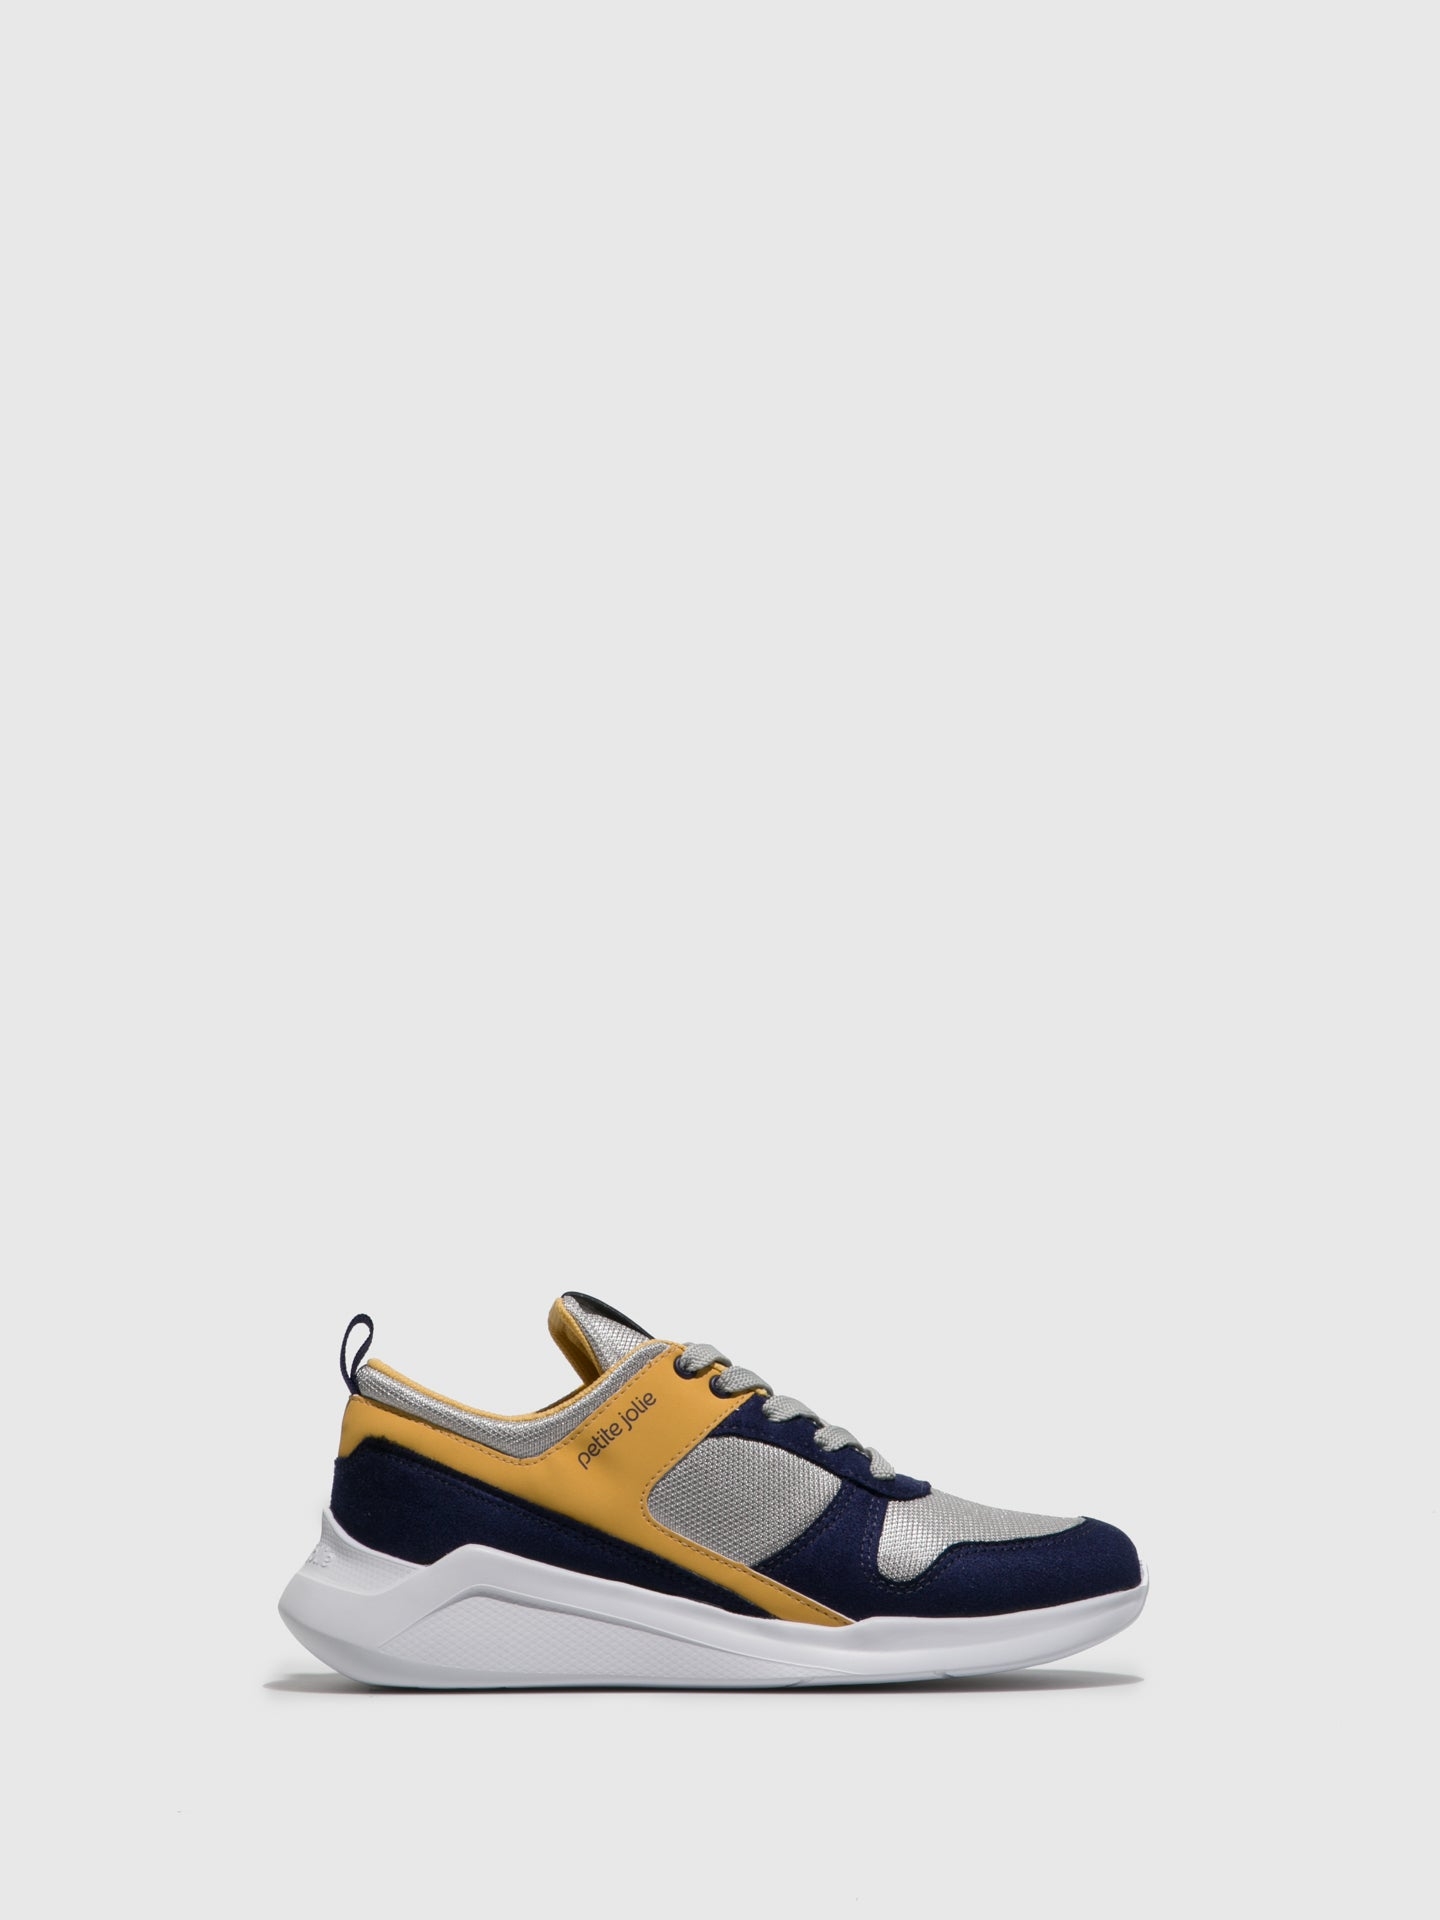 PETITE JOLIE by PARODI Navy Lace-up Trainers